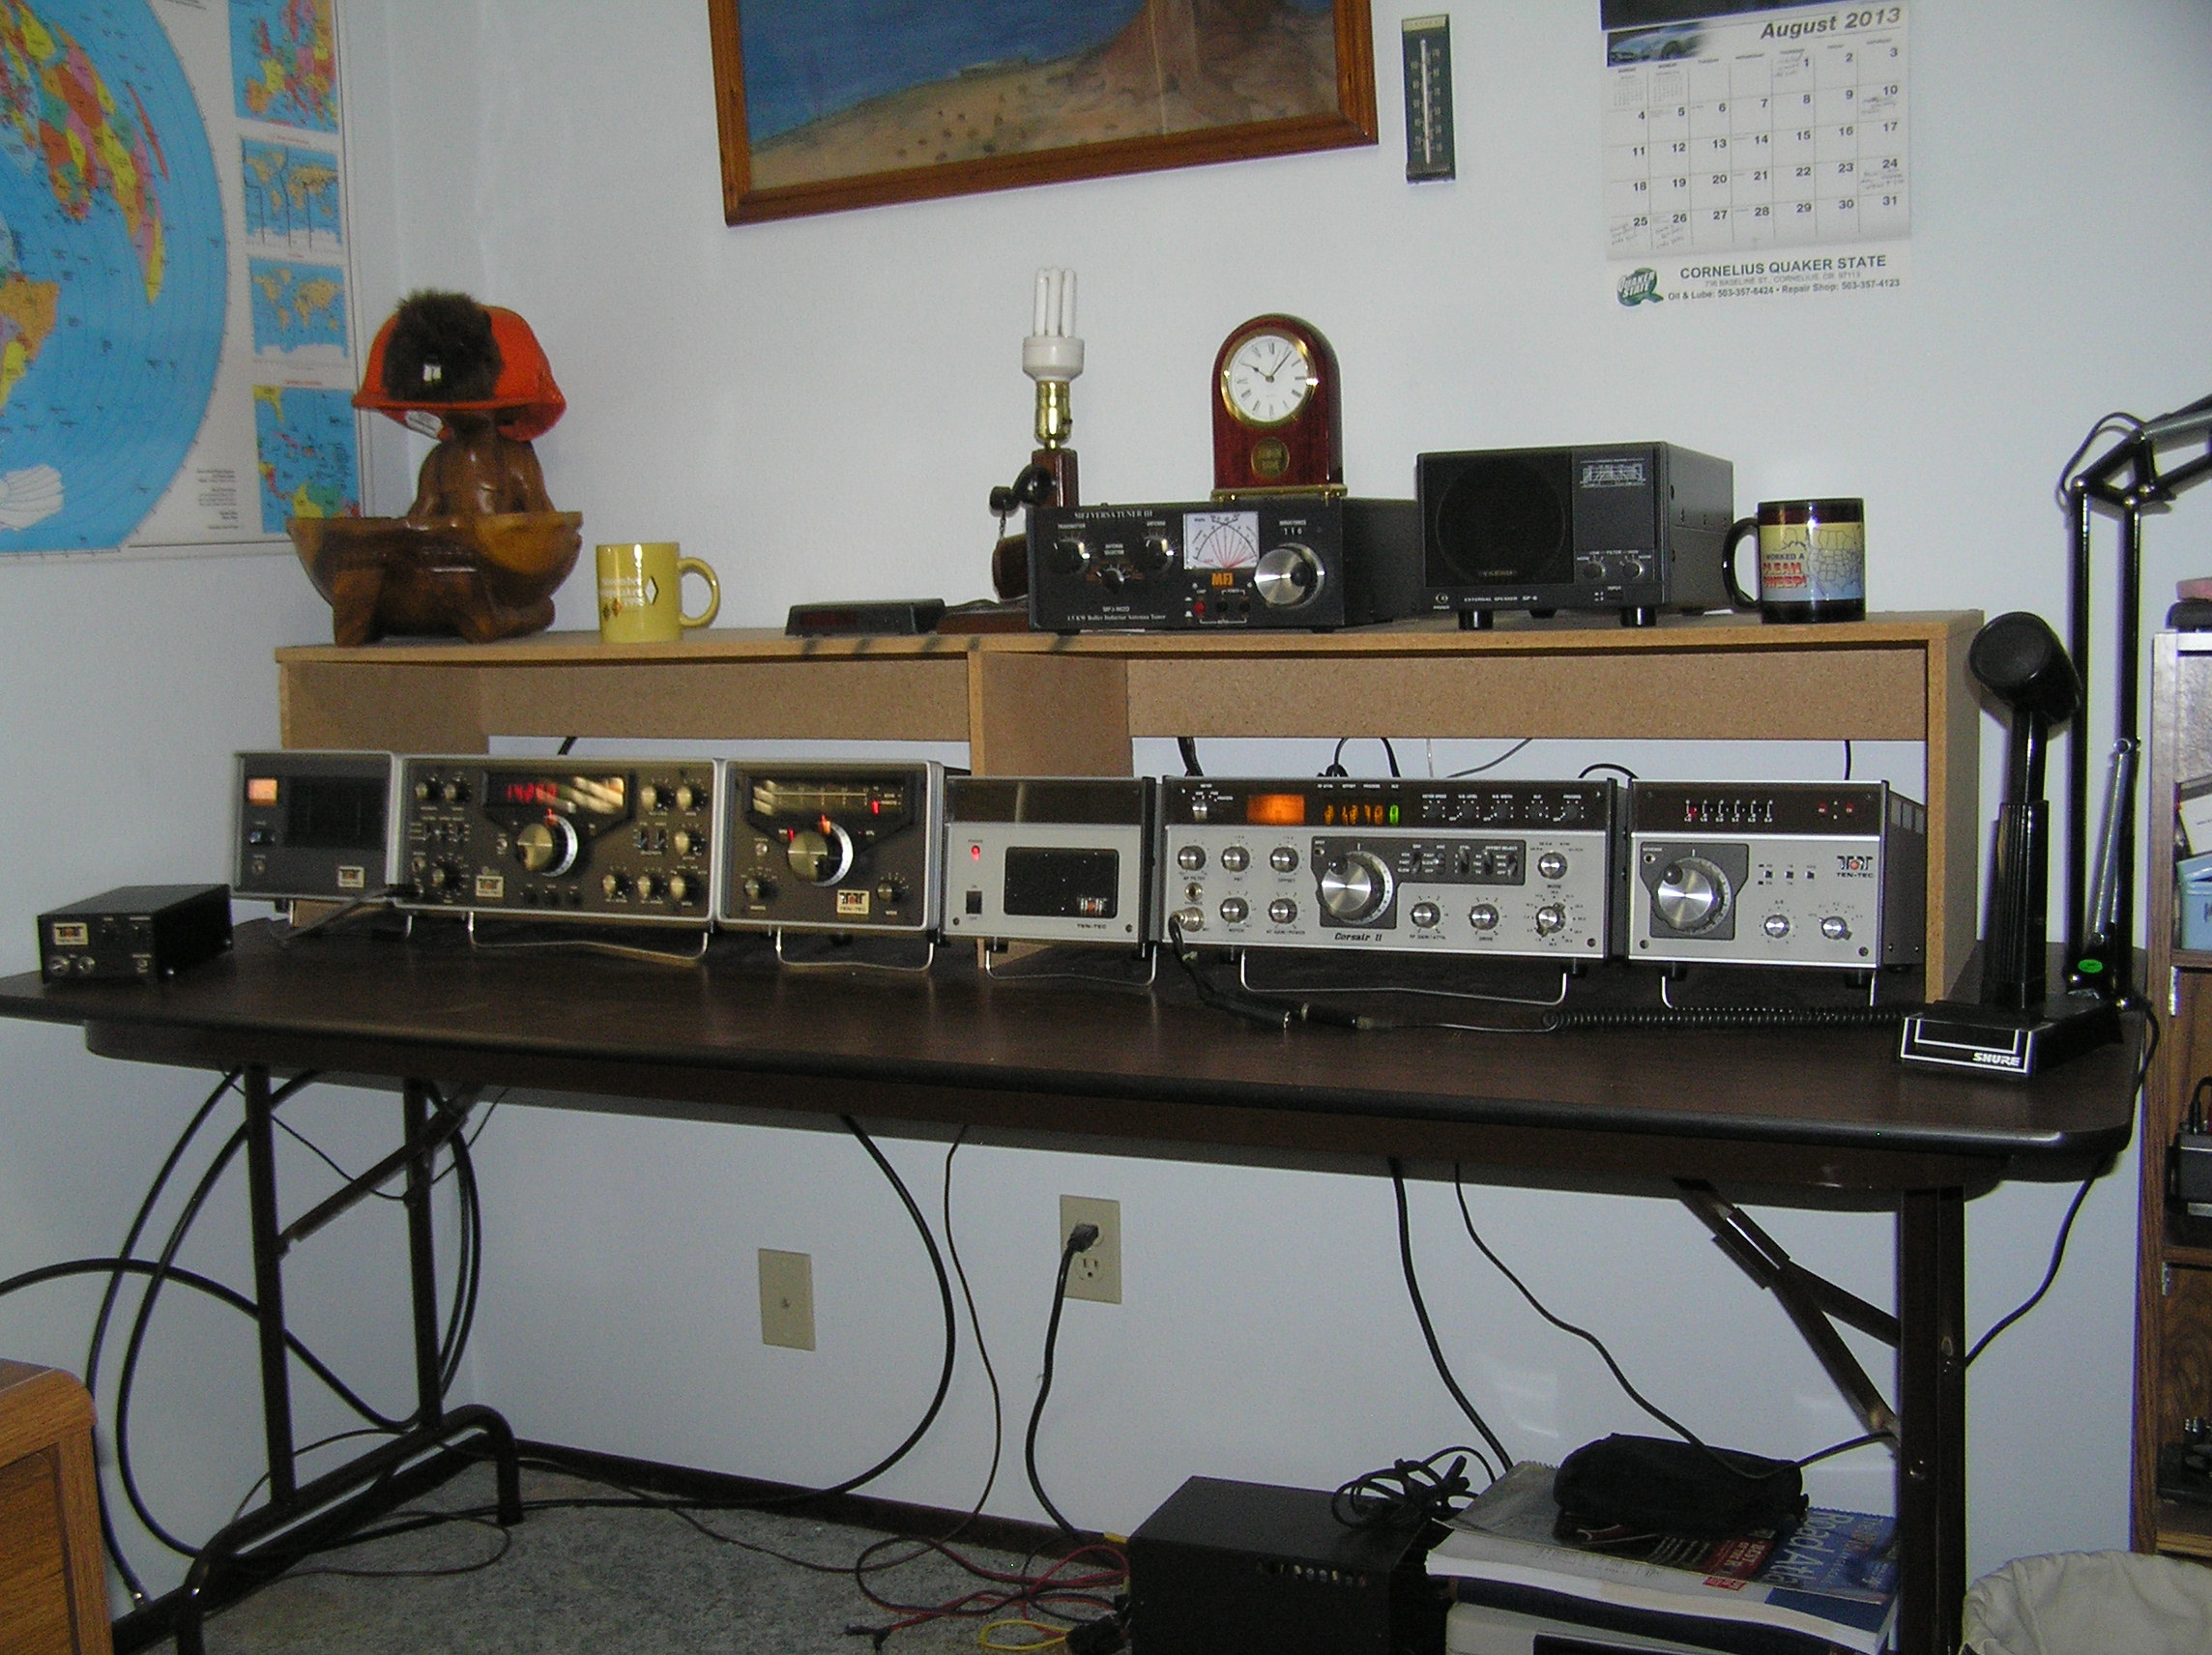 My back up stations going left to right. Consist of a Ten Tec Omni D series C and a Ten Tec Corsair II. The microphone used on both stations is a Sure 444D.